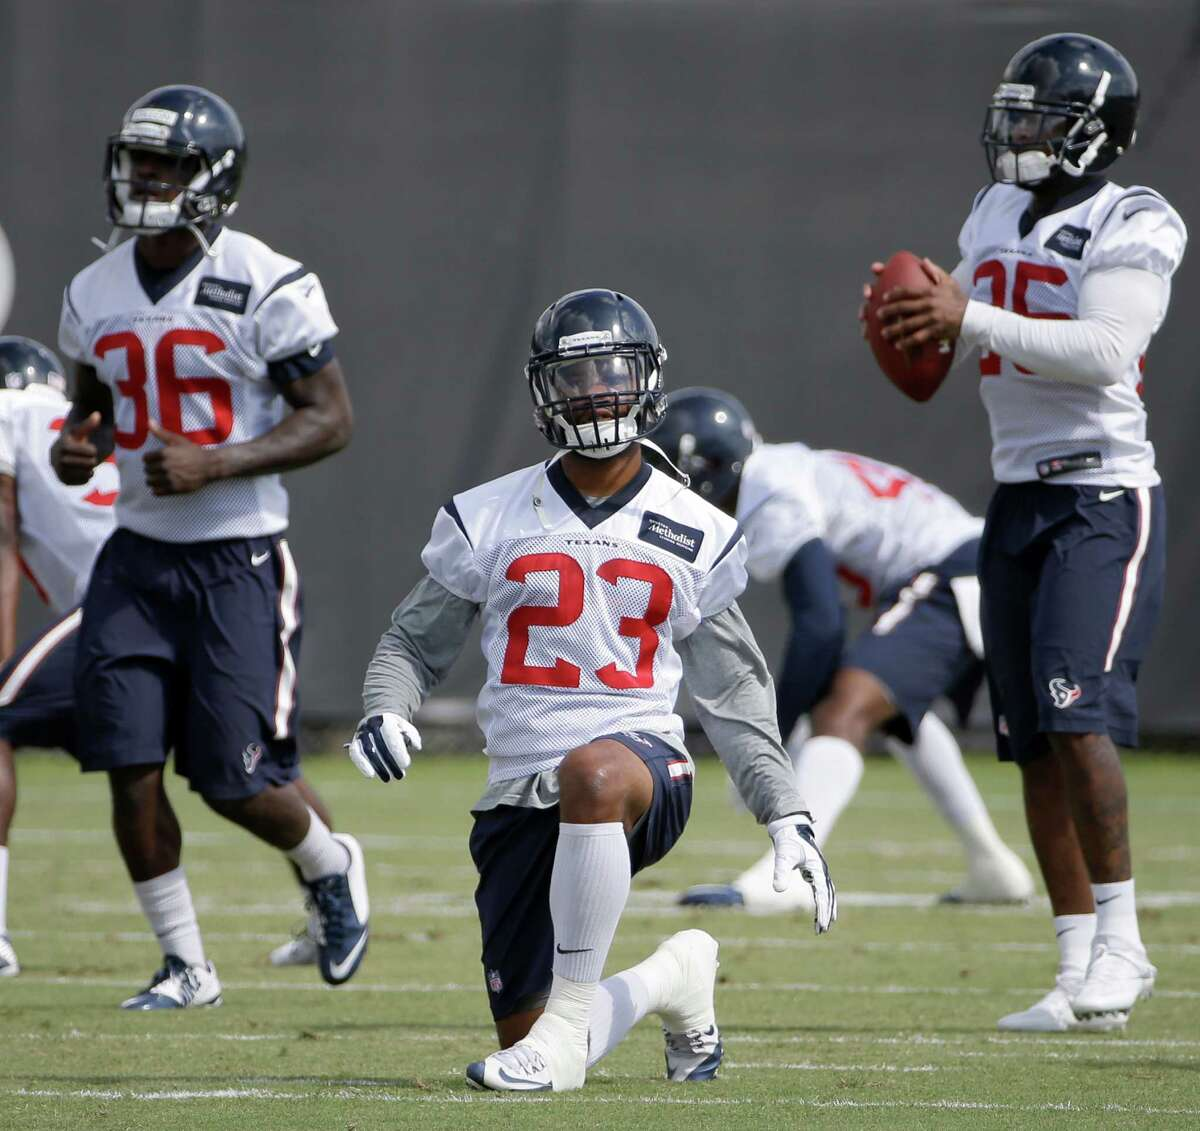 Kurtis Drummond, safety He was impressive enough last season to make the practice squad before being moved to the active roster in October and playing mostly special teams. He saw game action in the last two games. At 6-1, 200, he's got good enough size. He's a hard hitter. He must be careful not to miss tackles and make sure he's got the defense down. Drummond moves well. He and another former undrafted free agent, Corey Moore, have been making plays at safety during the offseason program and training camp. Like Moore, Drummond is trying to earn a backup job.